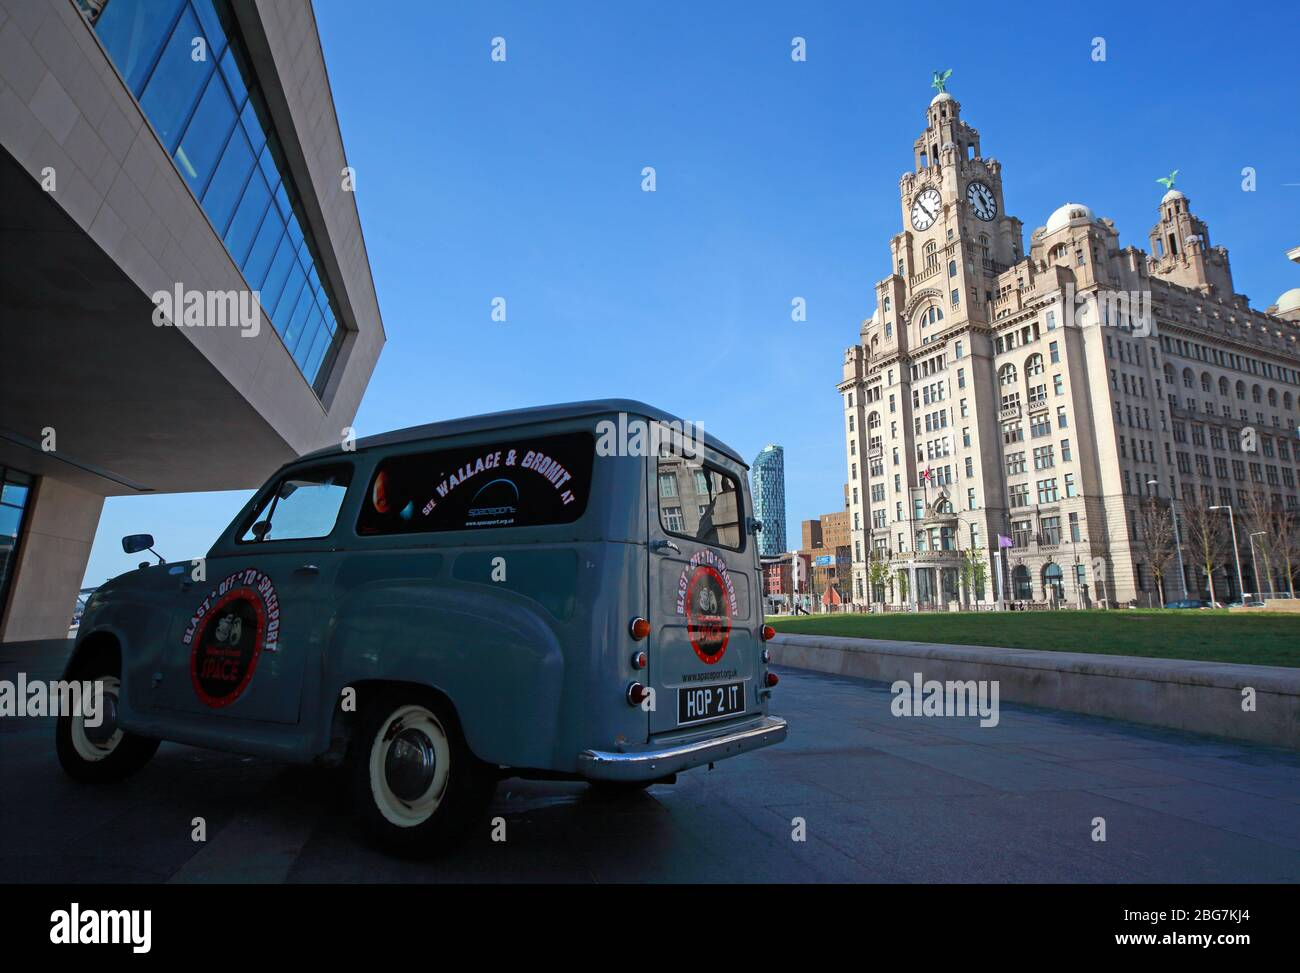 Wallace and Grommet Austin A35 blue van,HOP 2IT, at Pier Head waterfront,Royal Liver Building,Three Graces, Liverpool city centre, Merseyside Stock Photo